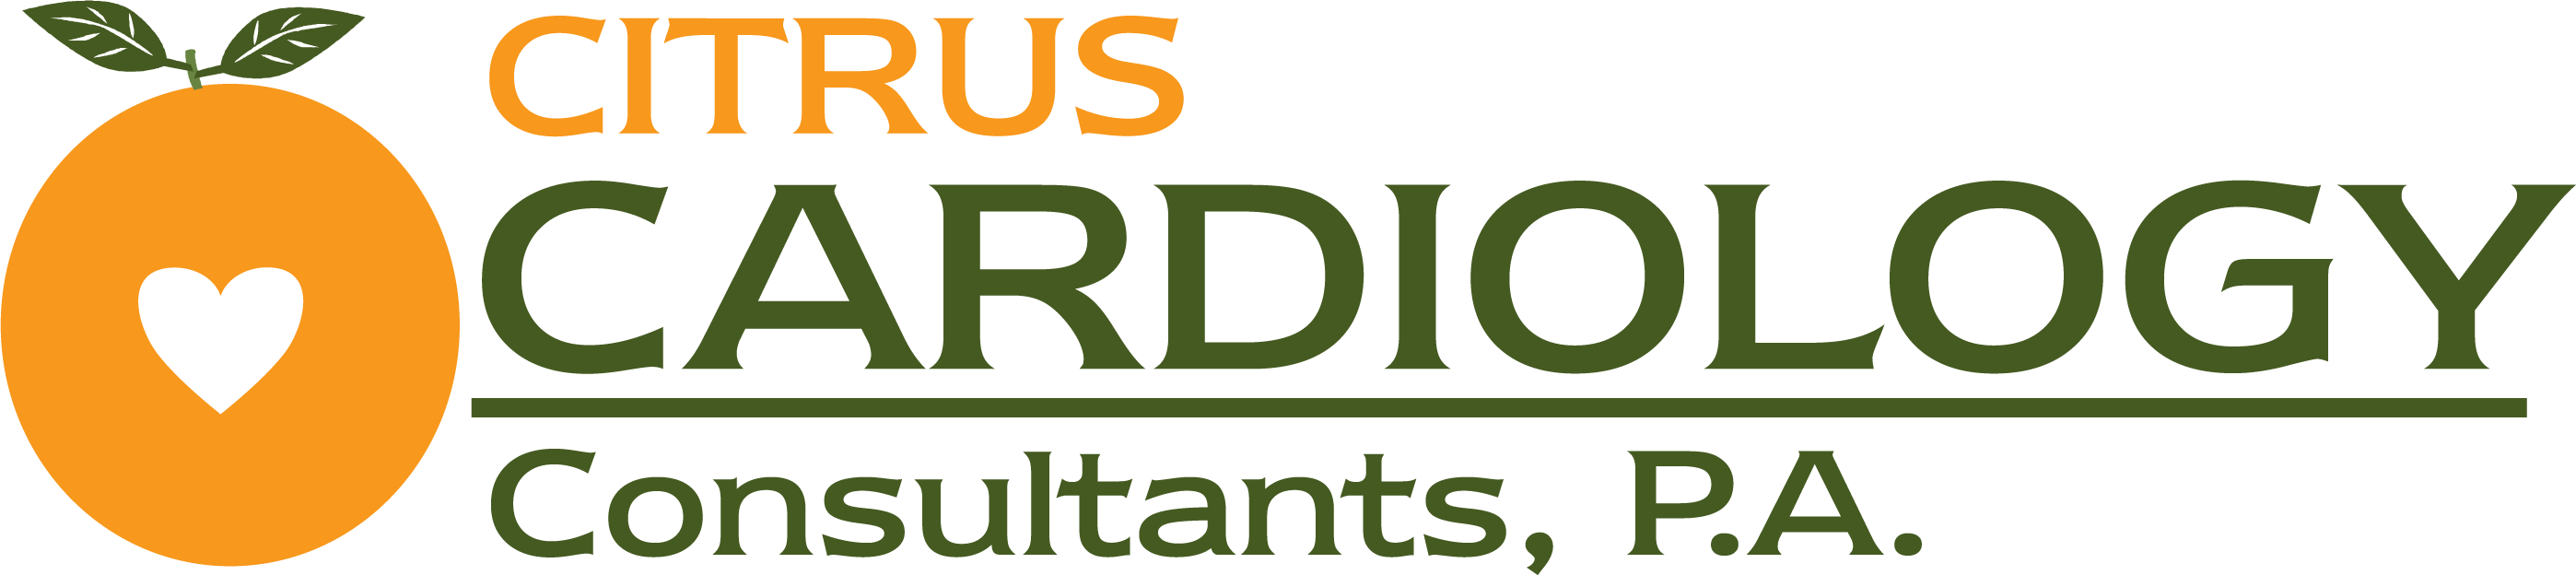 Citrus Cardiology Consultants PA